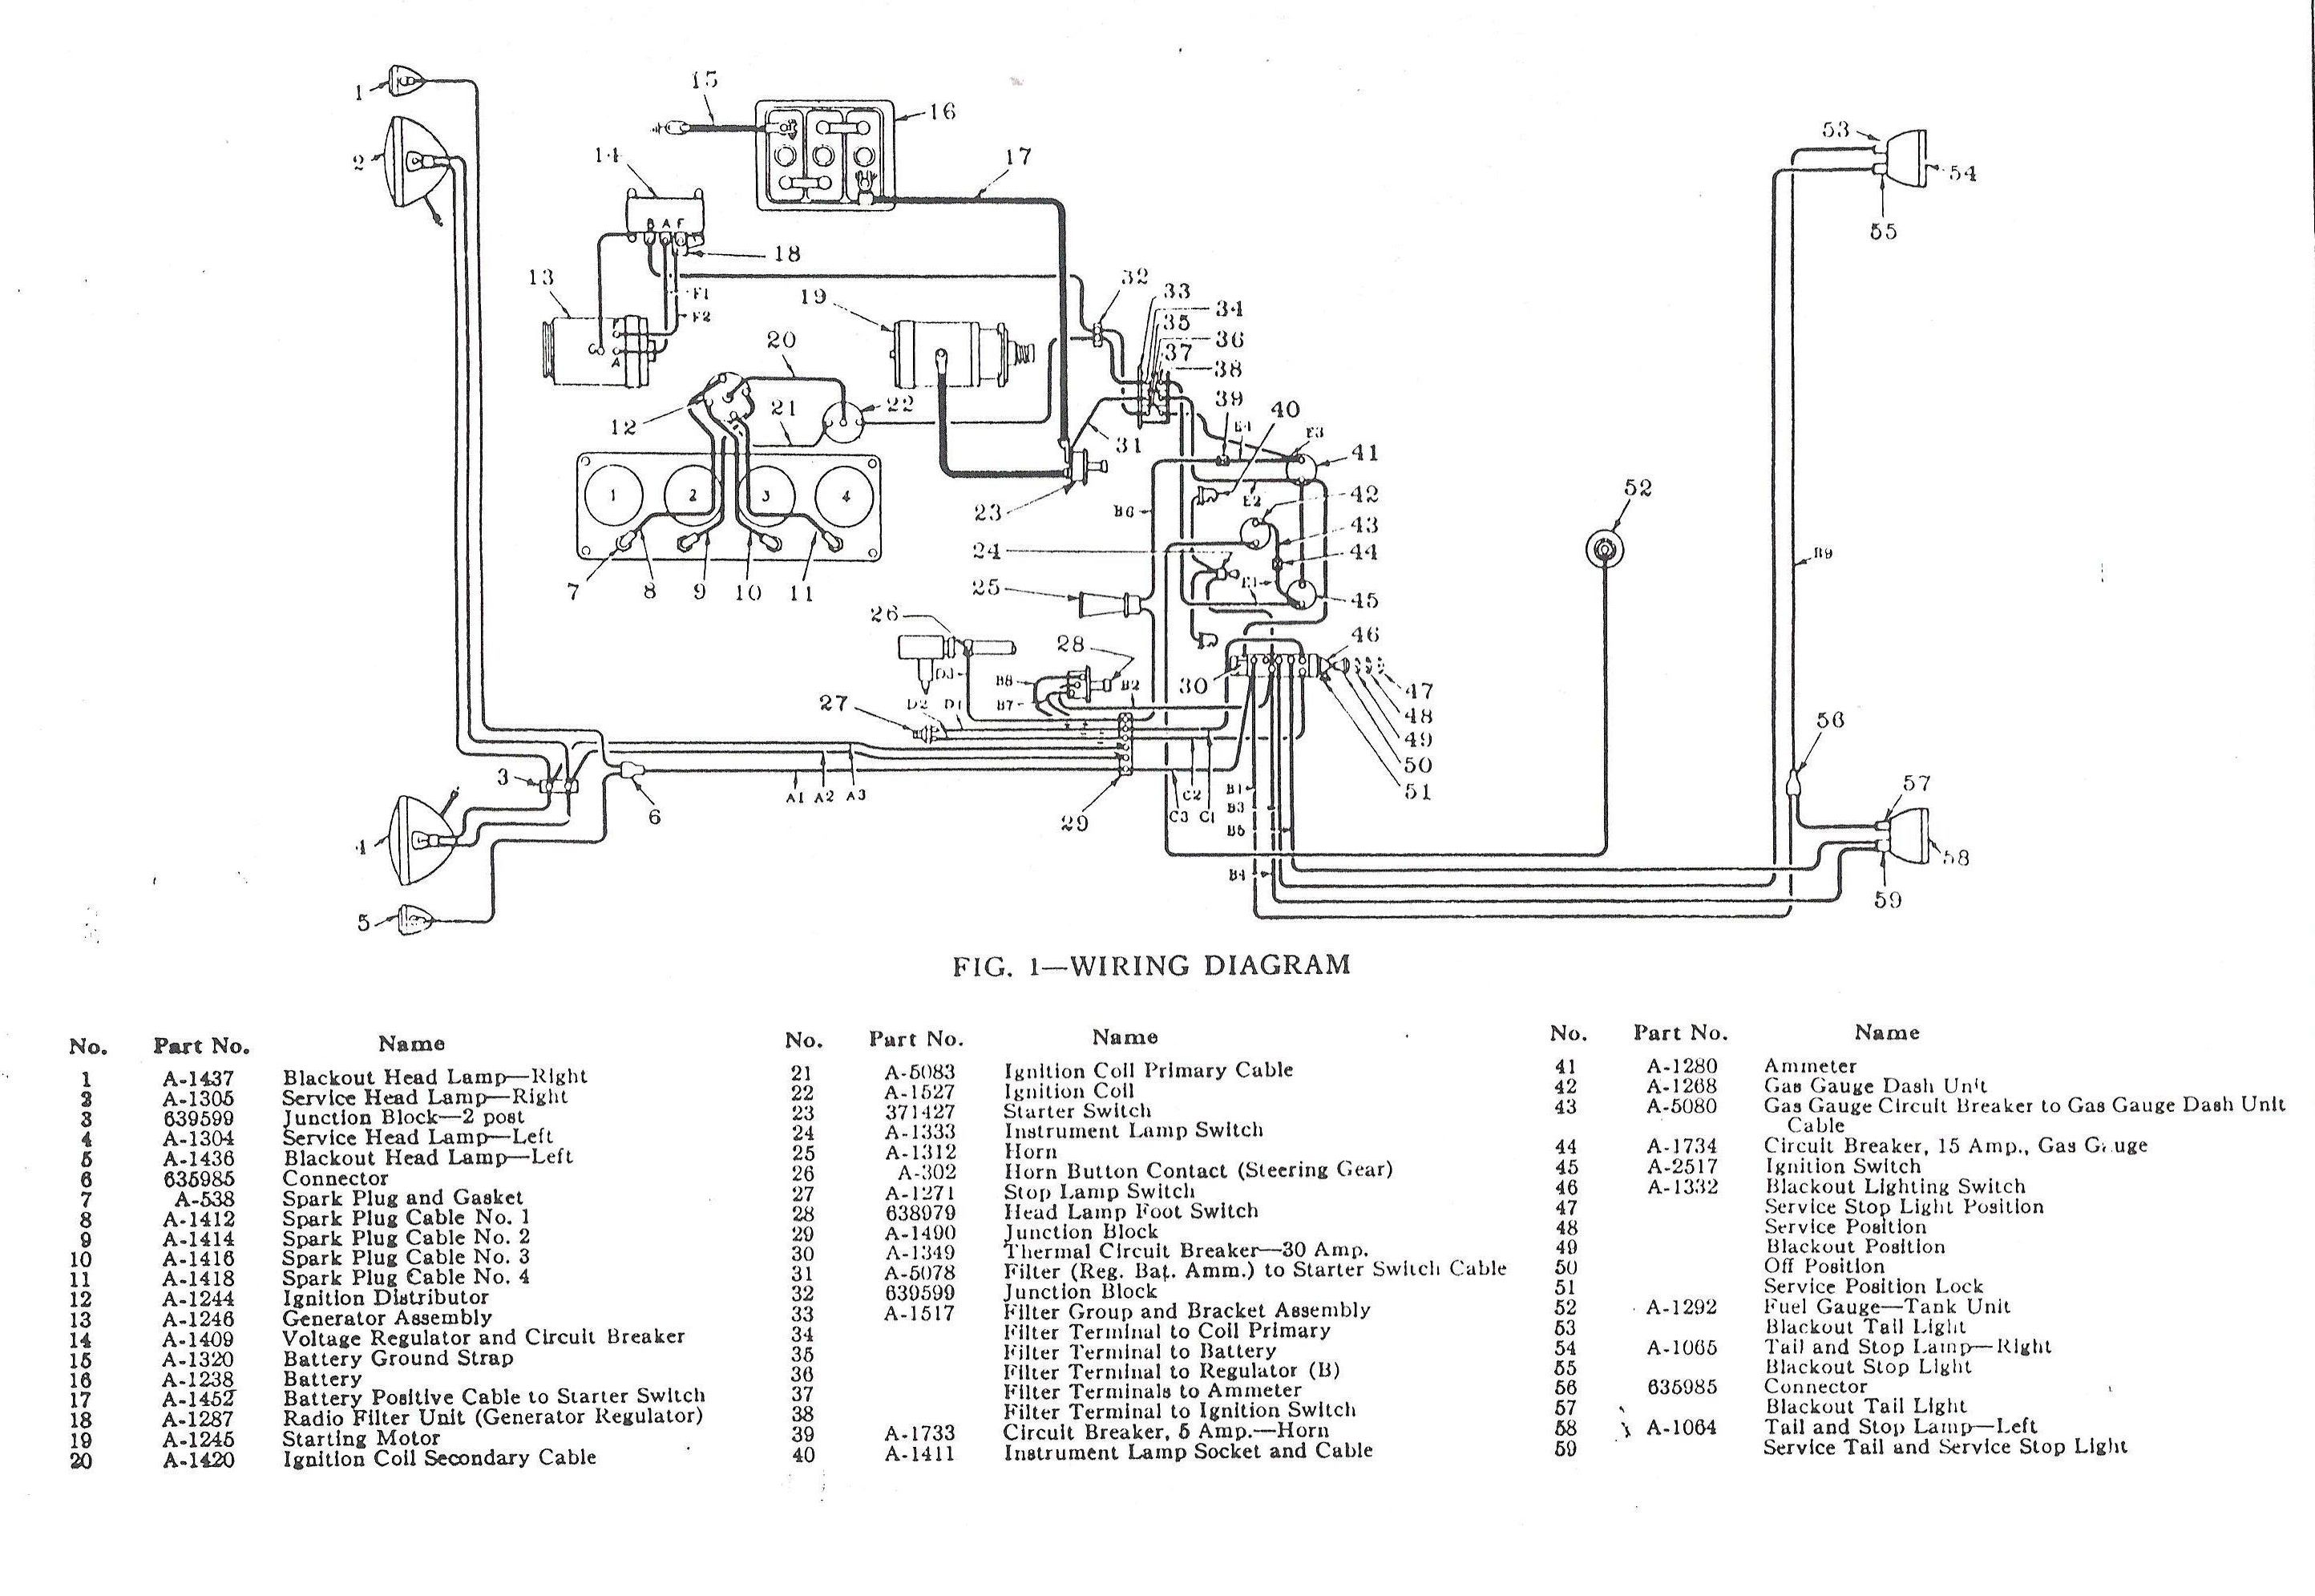 willys pickup wiring diagram wiring diagram todays rh 10 11 12 1813weddingbarn com willys truck wiring diagram 1958 willys wiring diagram [ 2888 x 1991 Pixel ]